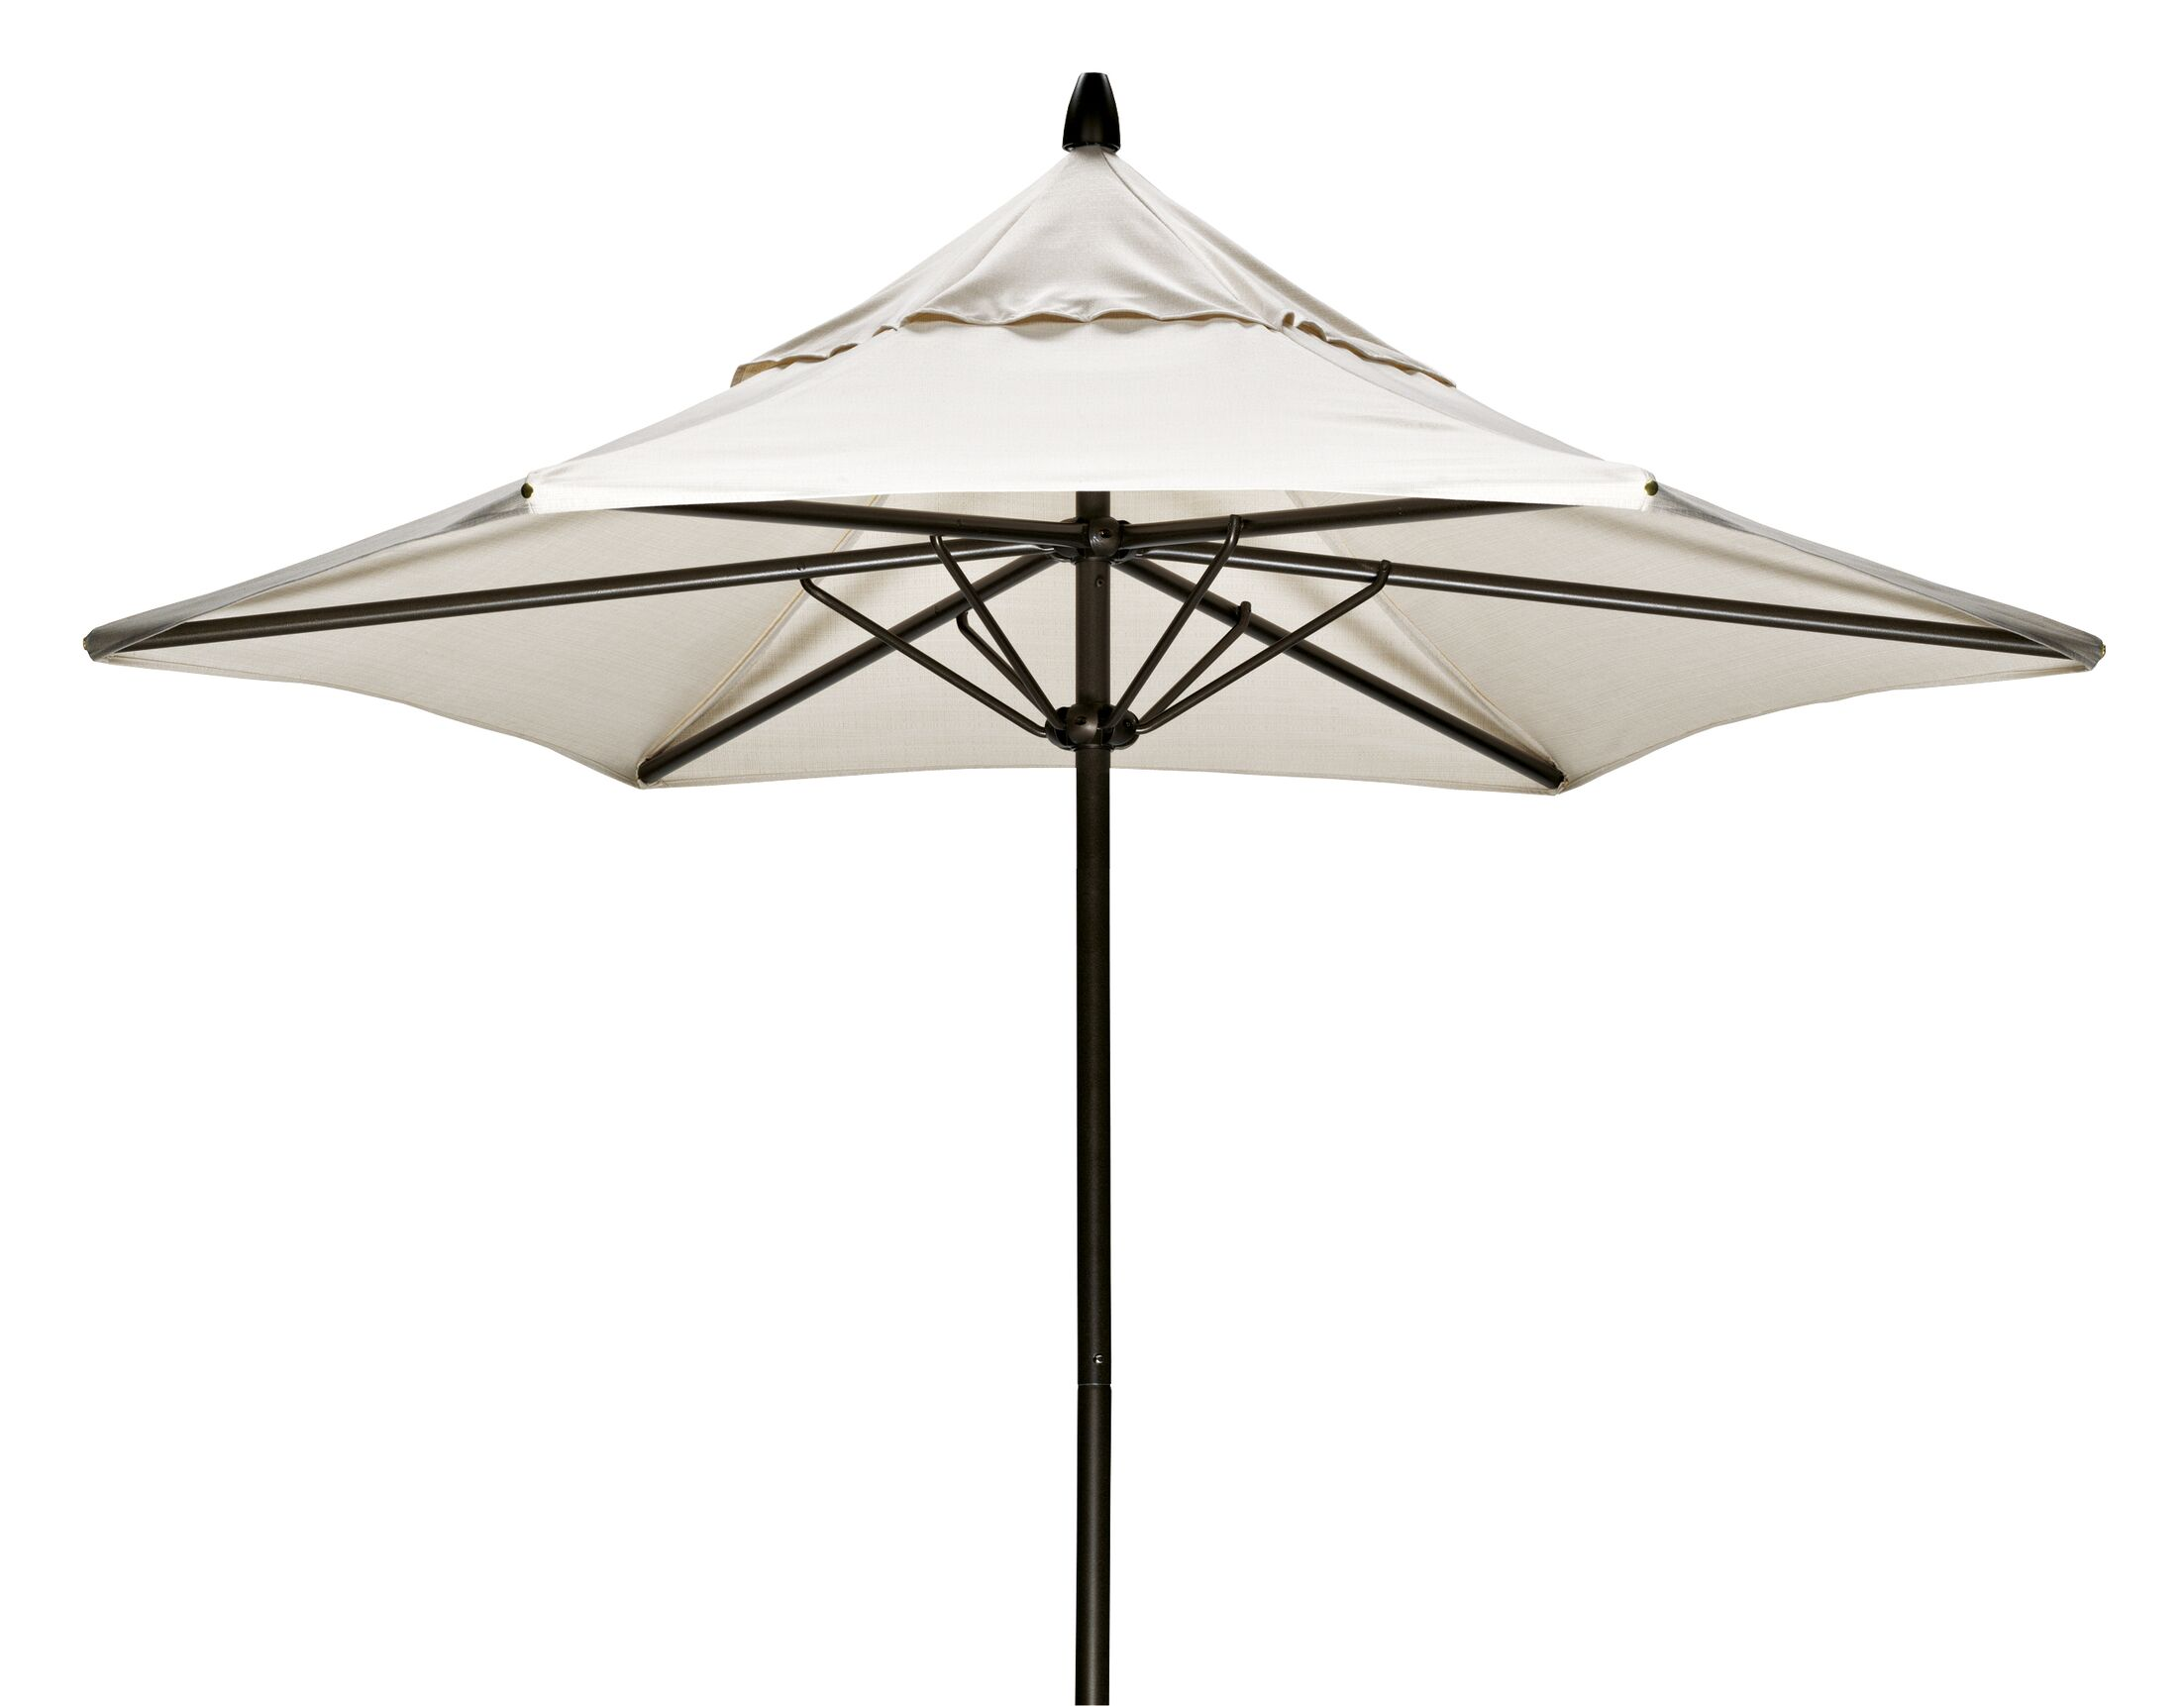 Commercial 7.5' Market Umbrella Fabric: Anders, Frame Finish: Textured Beachwood